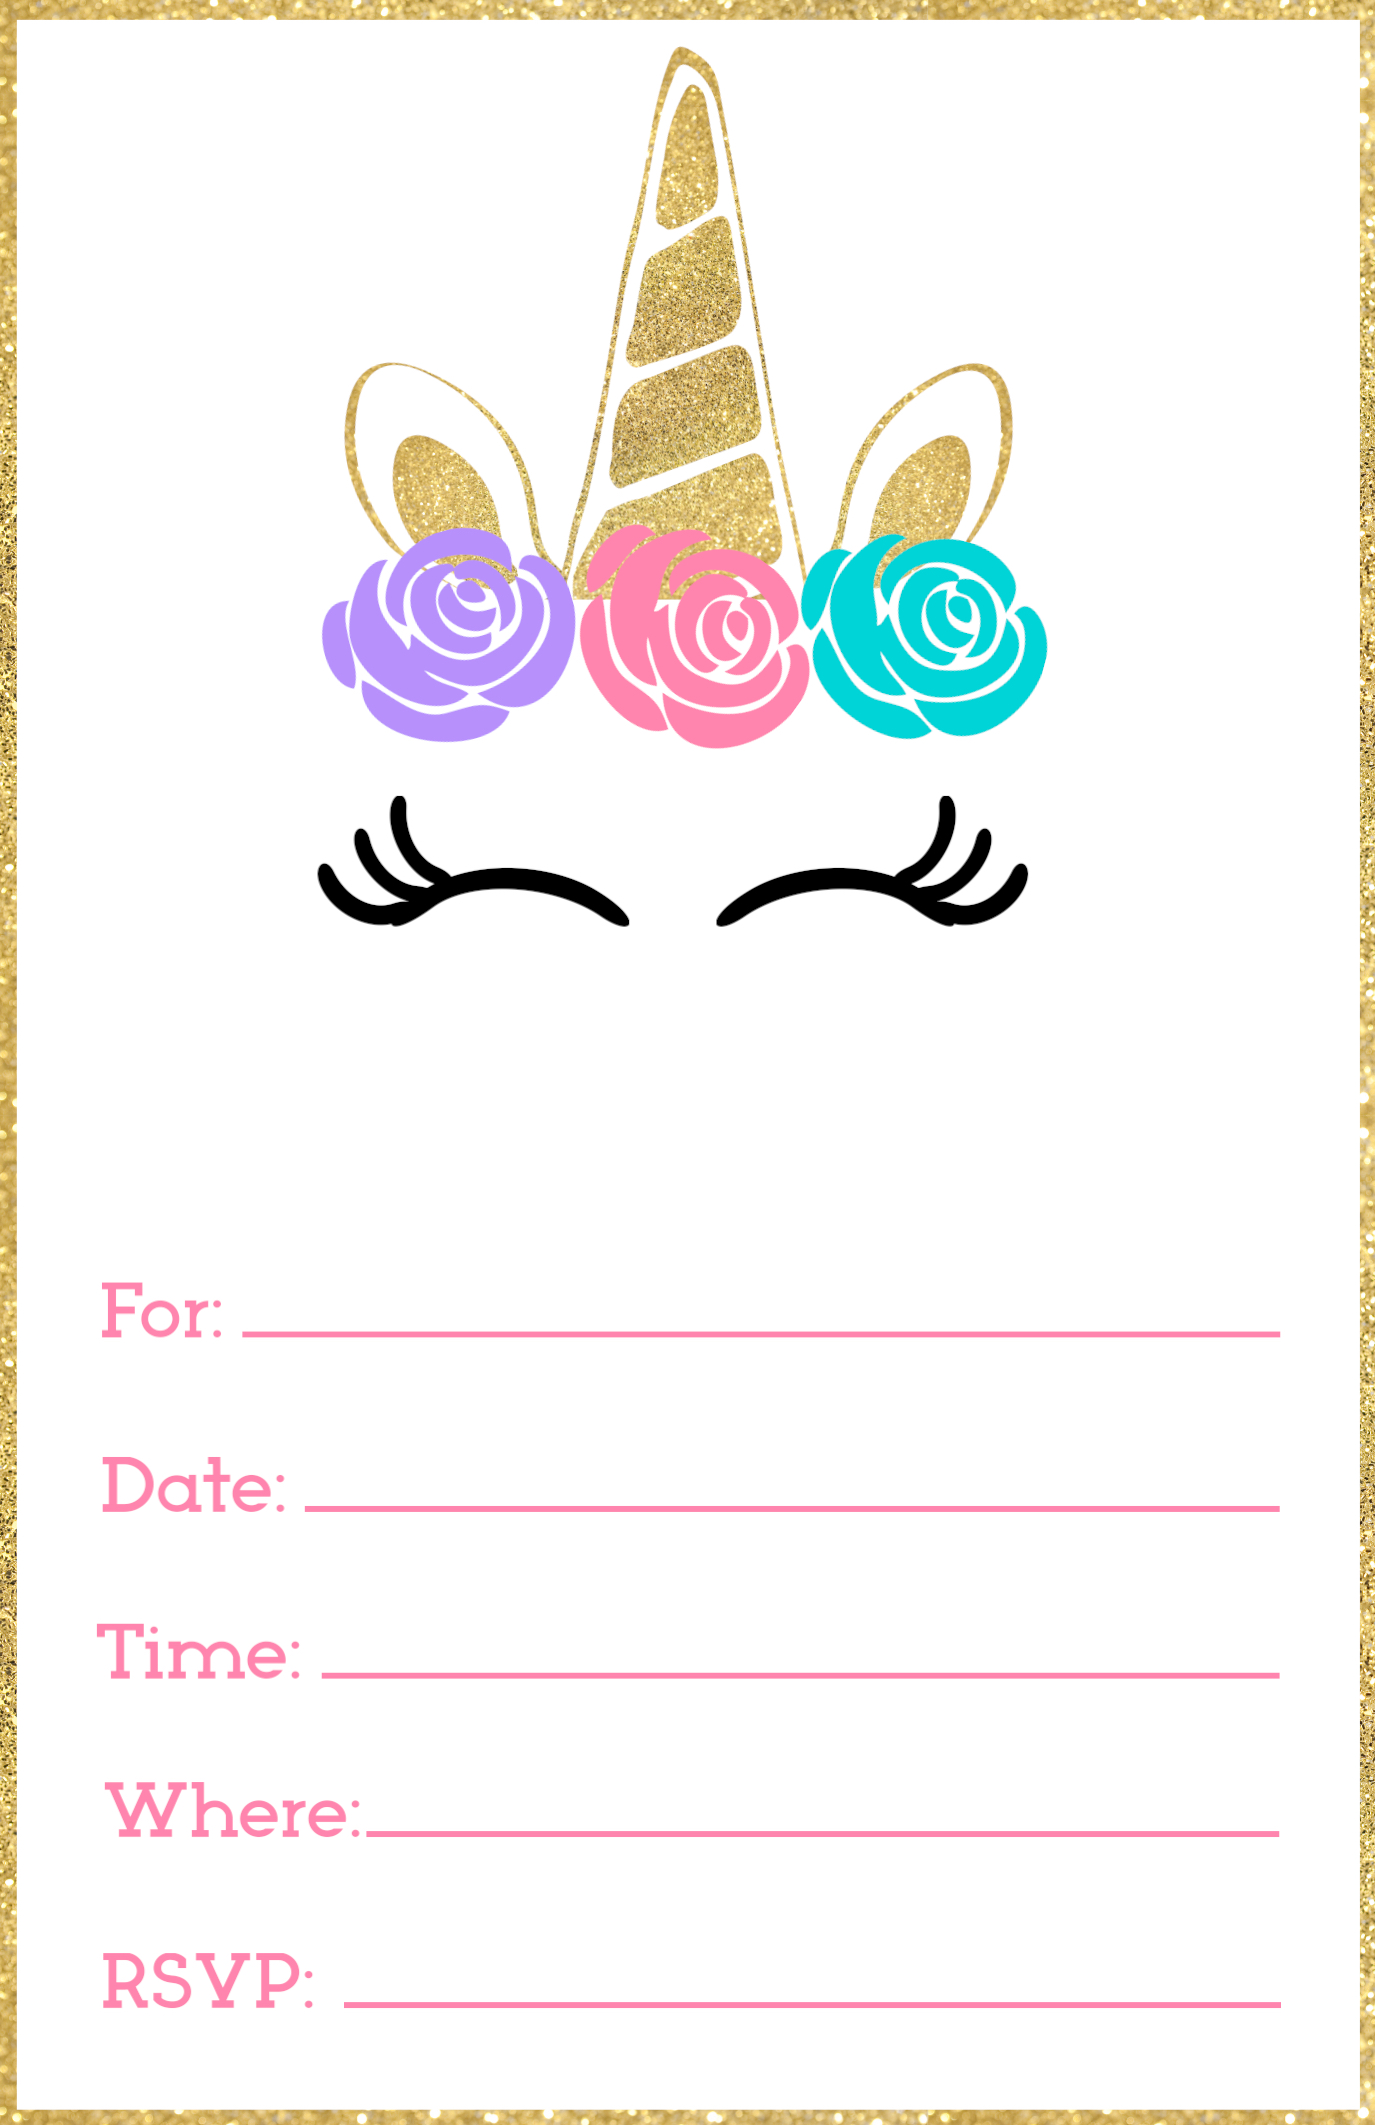 image relating to Printable Party Invitations called Free of charge Printable Unicorn Invites Template - Paper Path Design and style